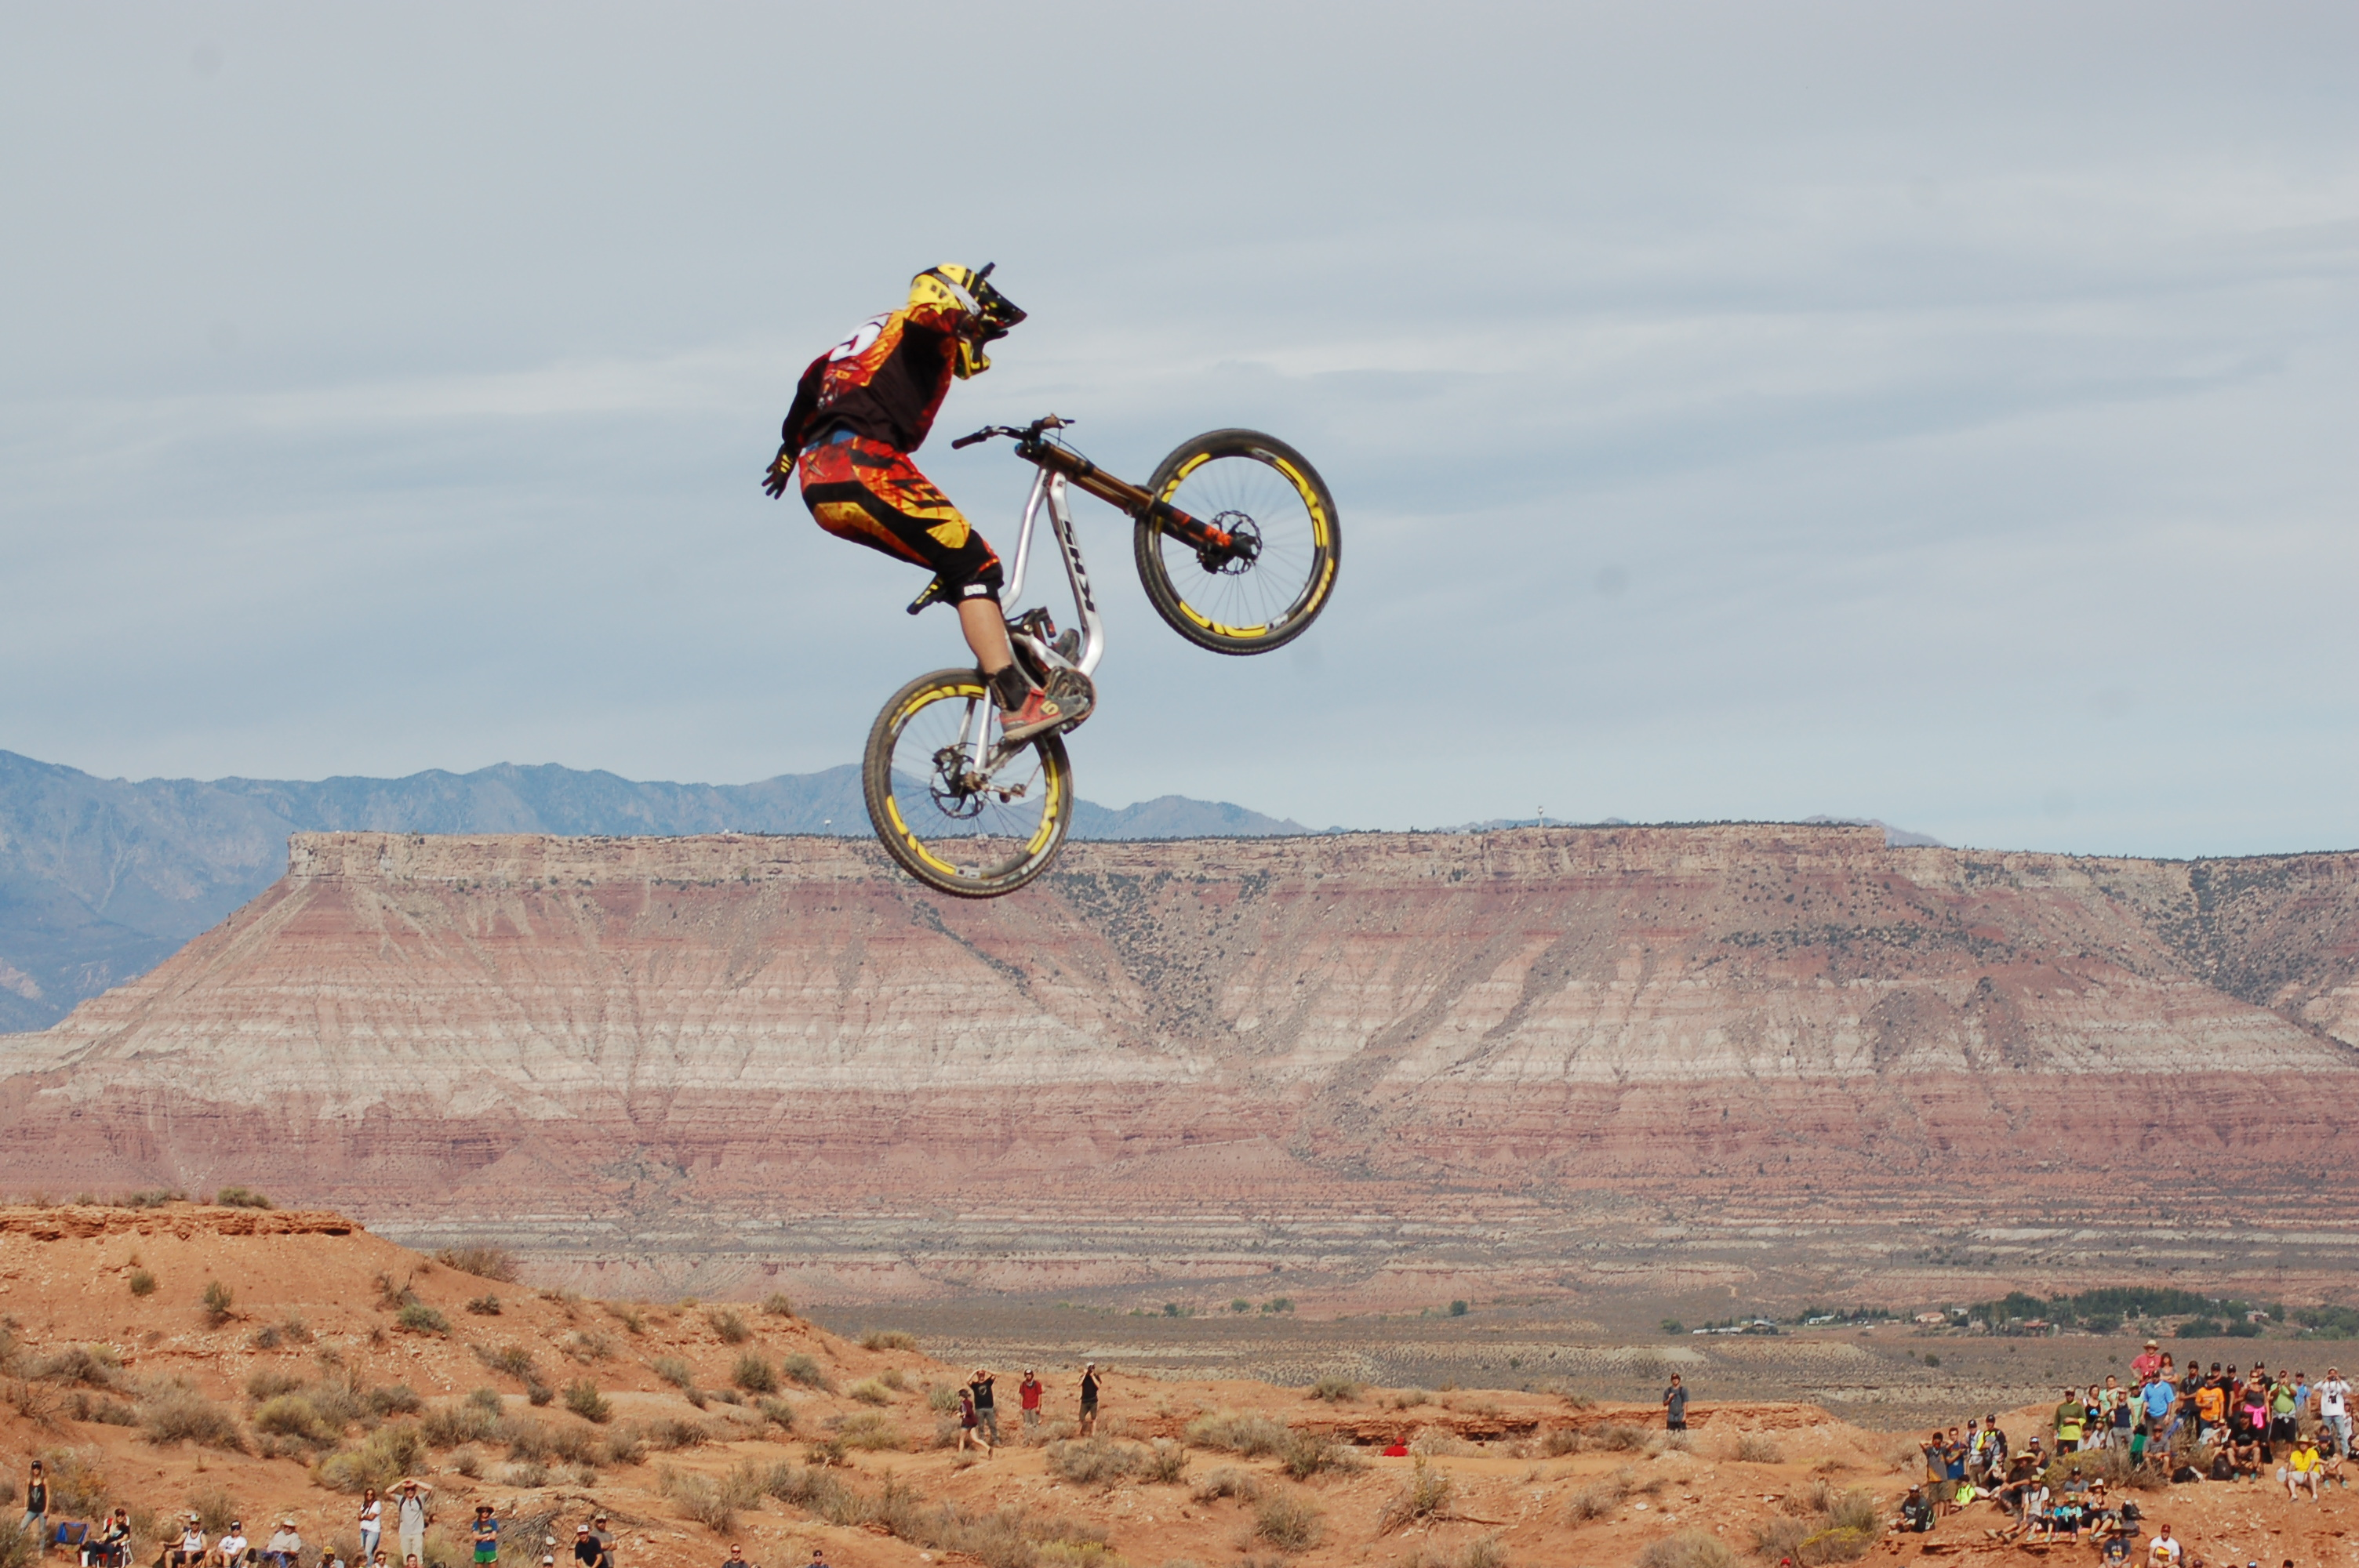 Red Bull Mountain Bike >> Sorge Returns As King Of The Mountain At Red Bull Rampage